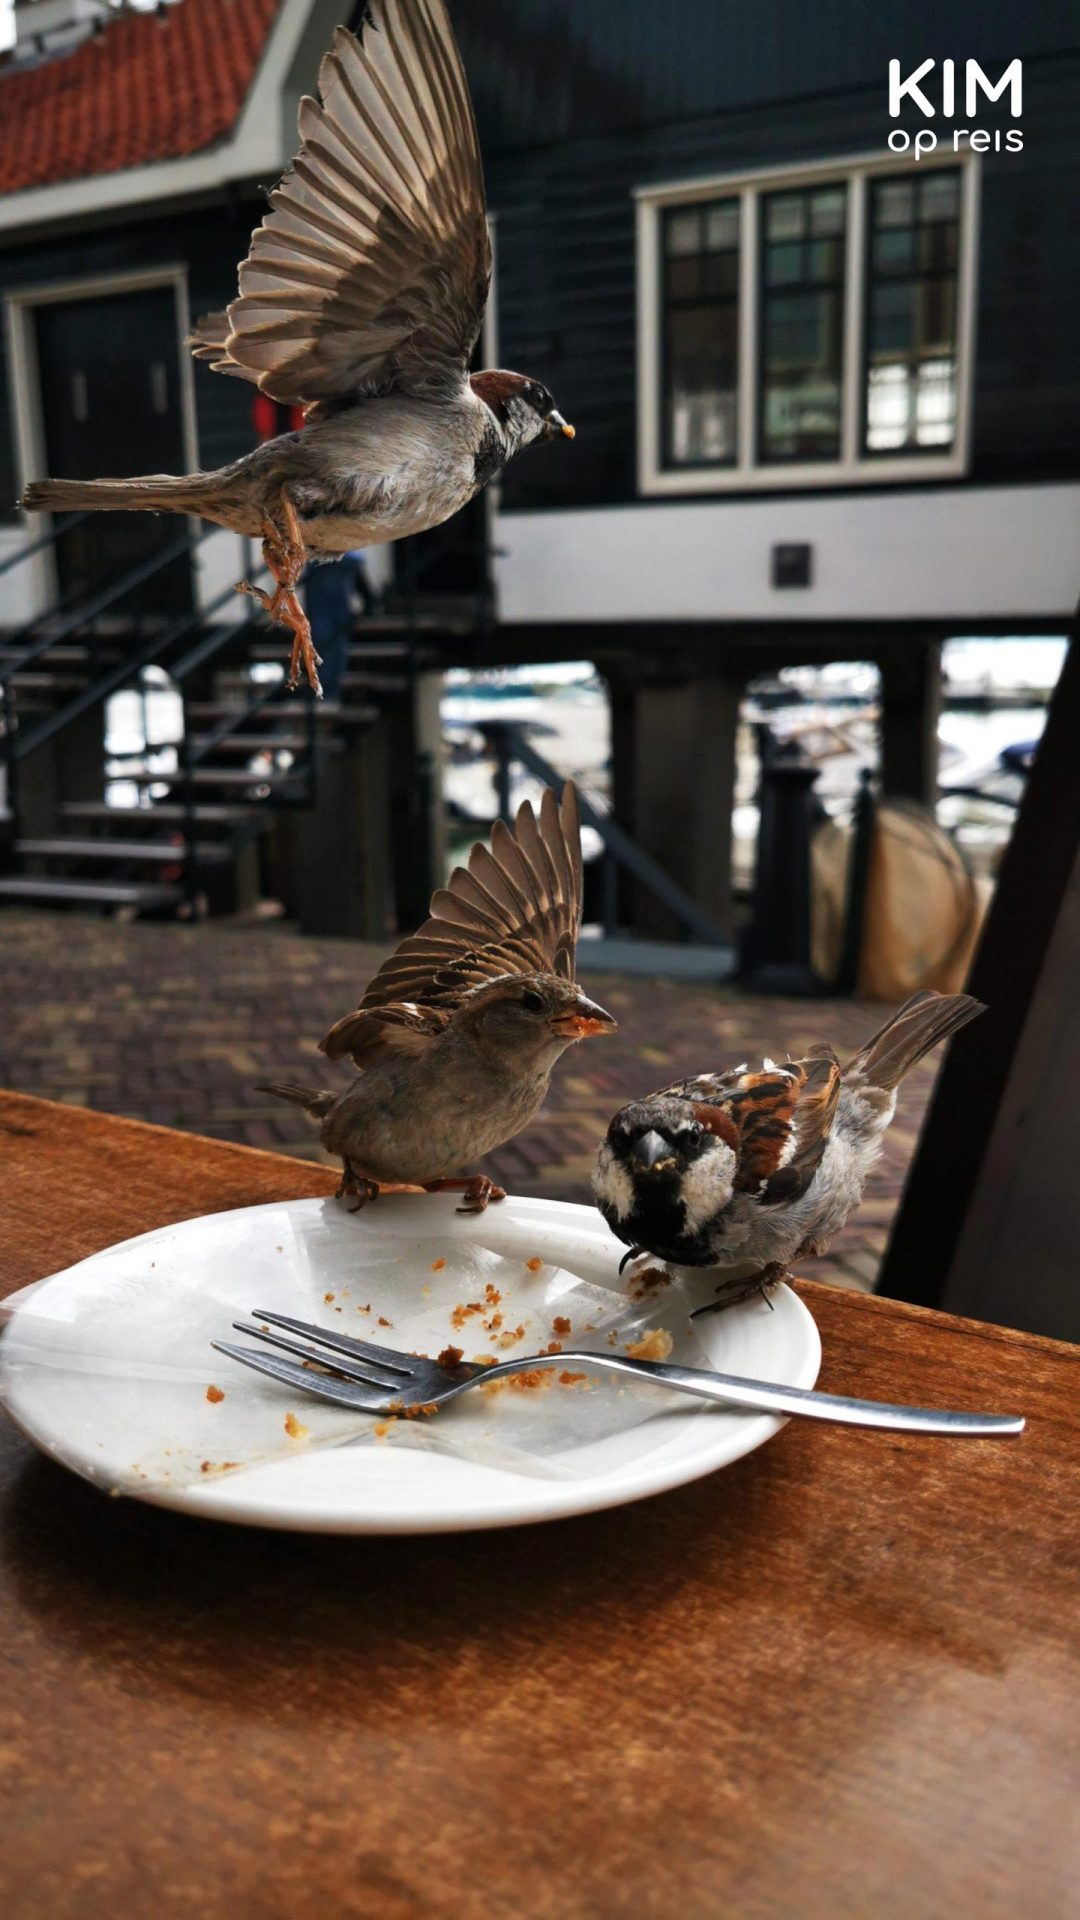 Sparrows Volendam - sparrows come to steal leftover cake; one flies off